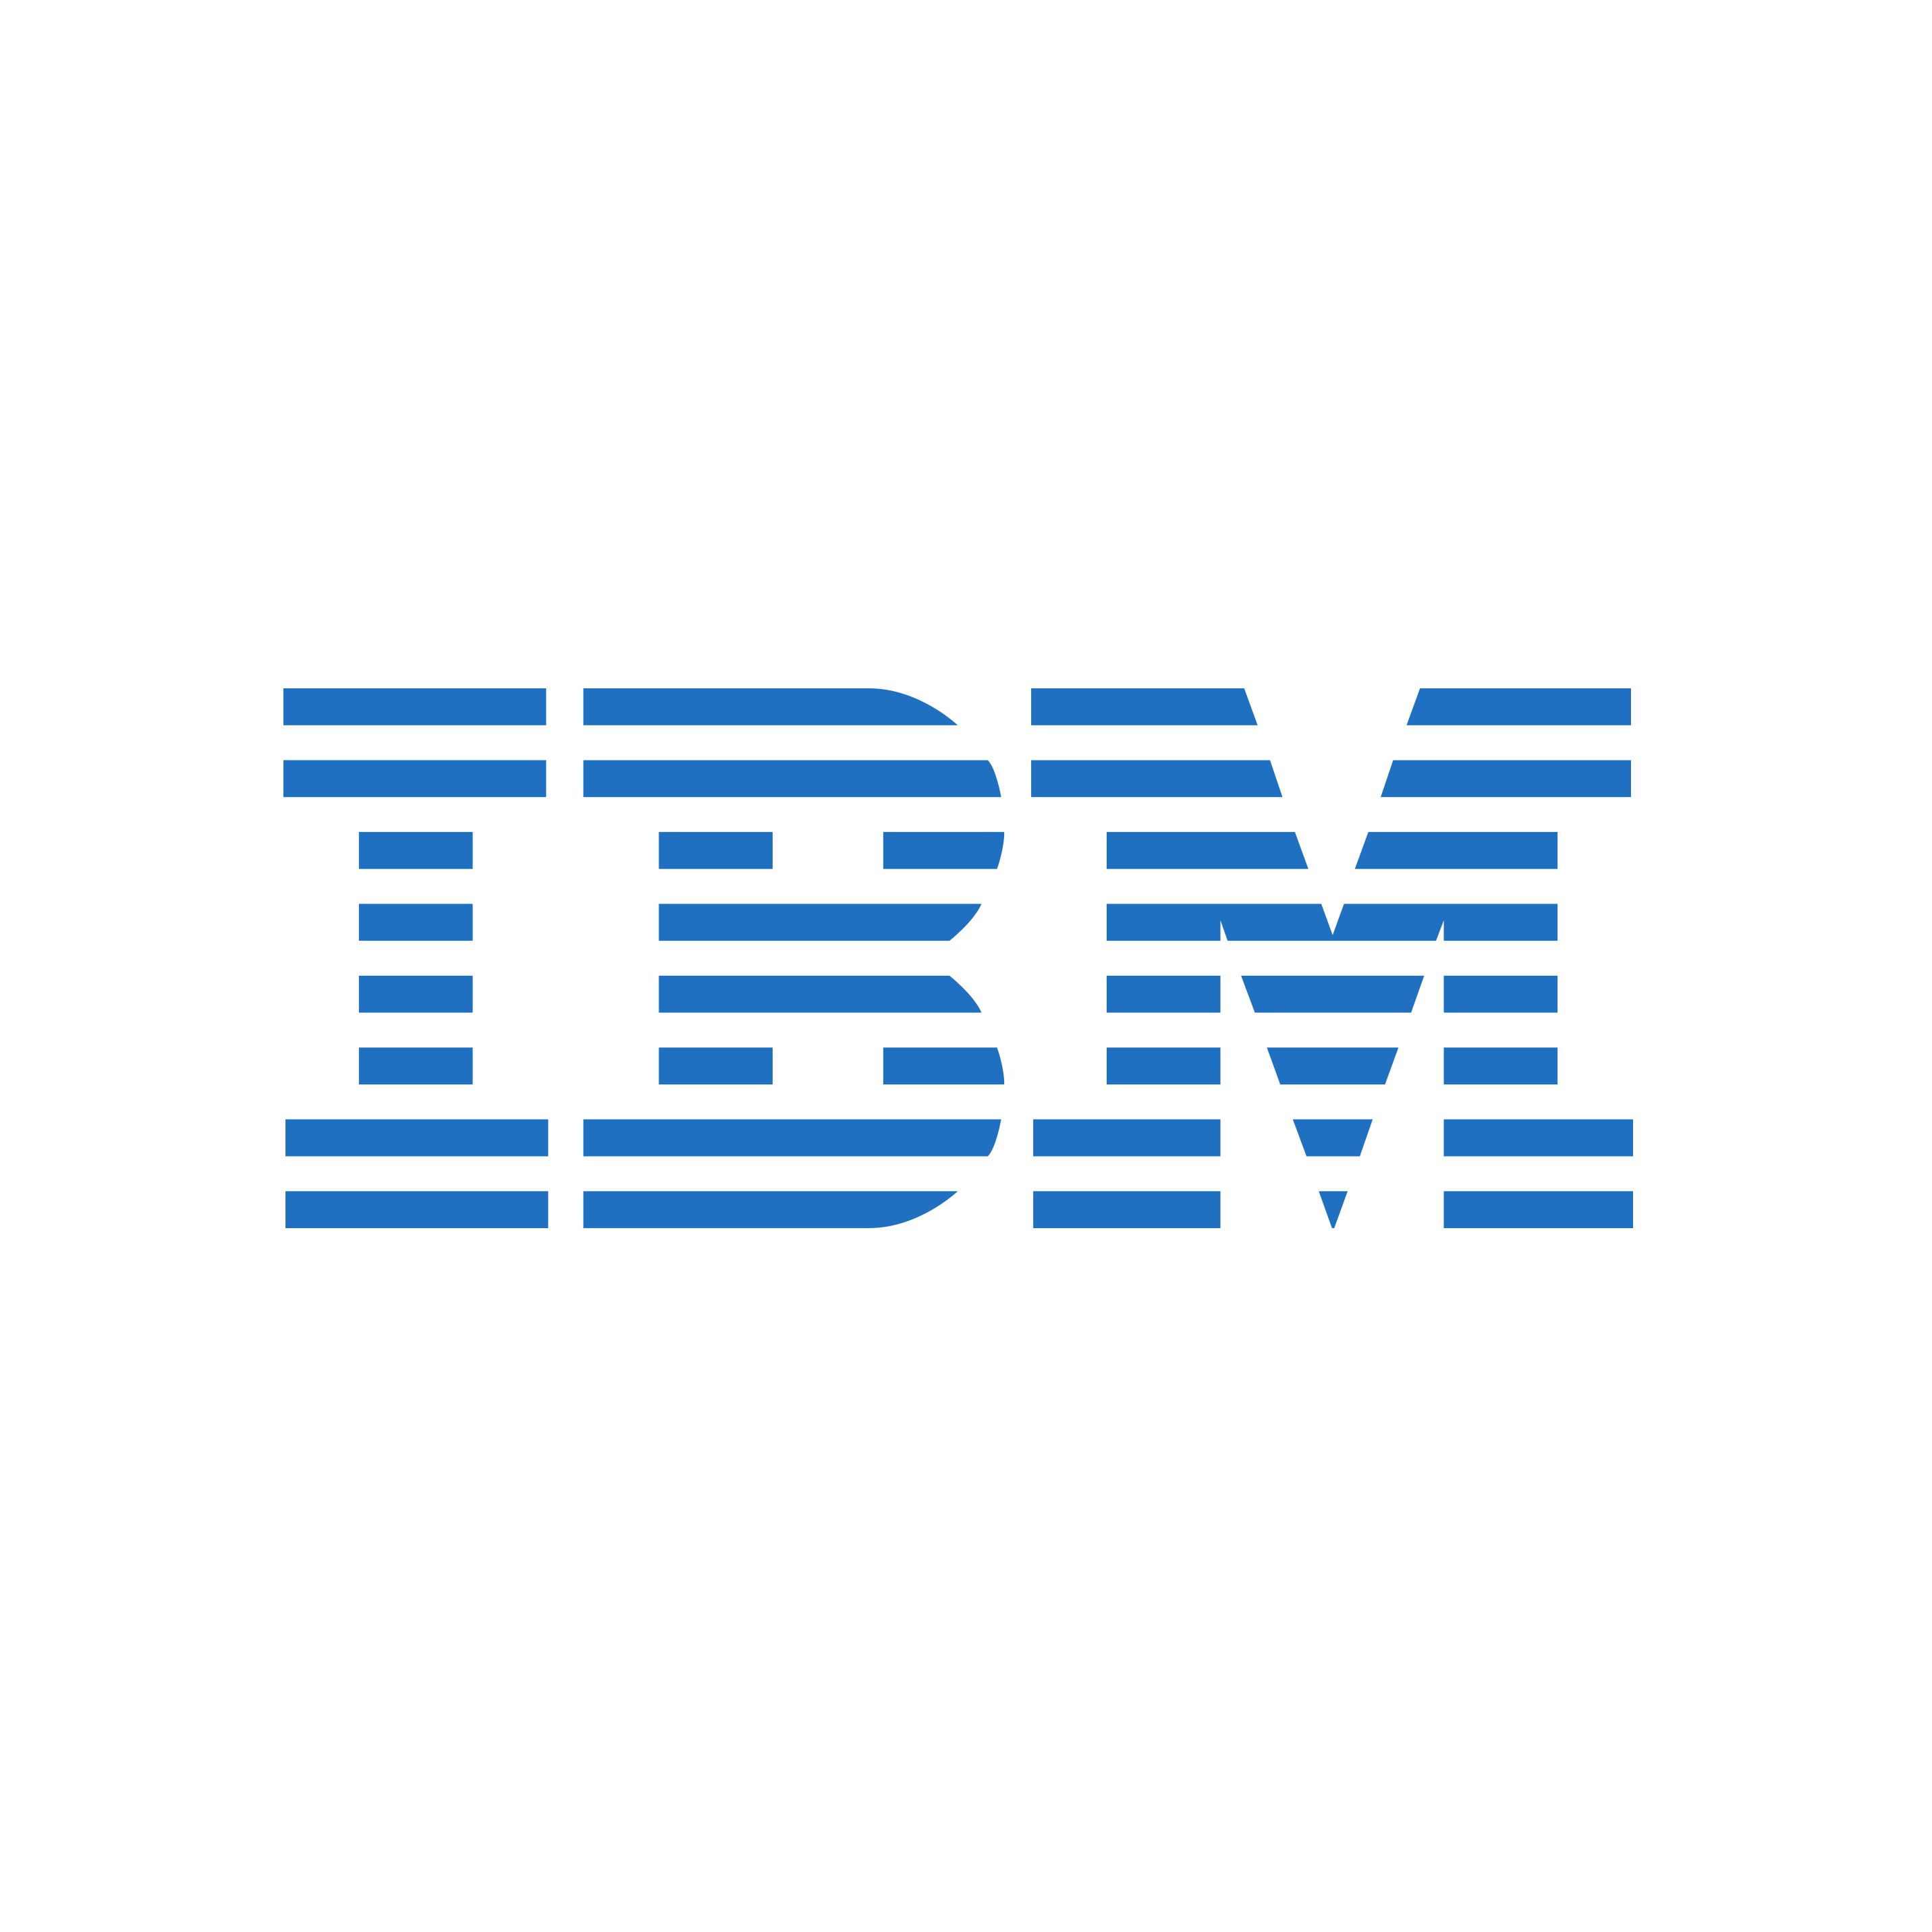 Information Ibm Business Personal Analytics Computer Technology PNG Image